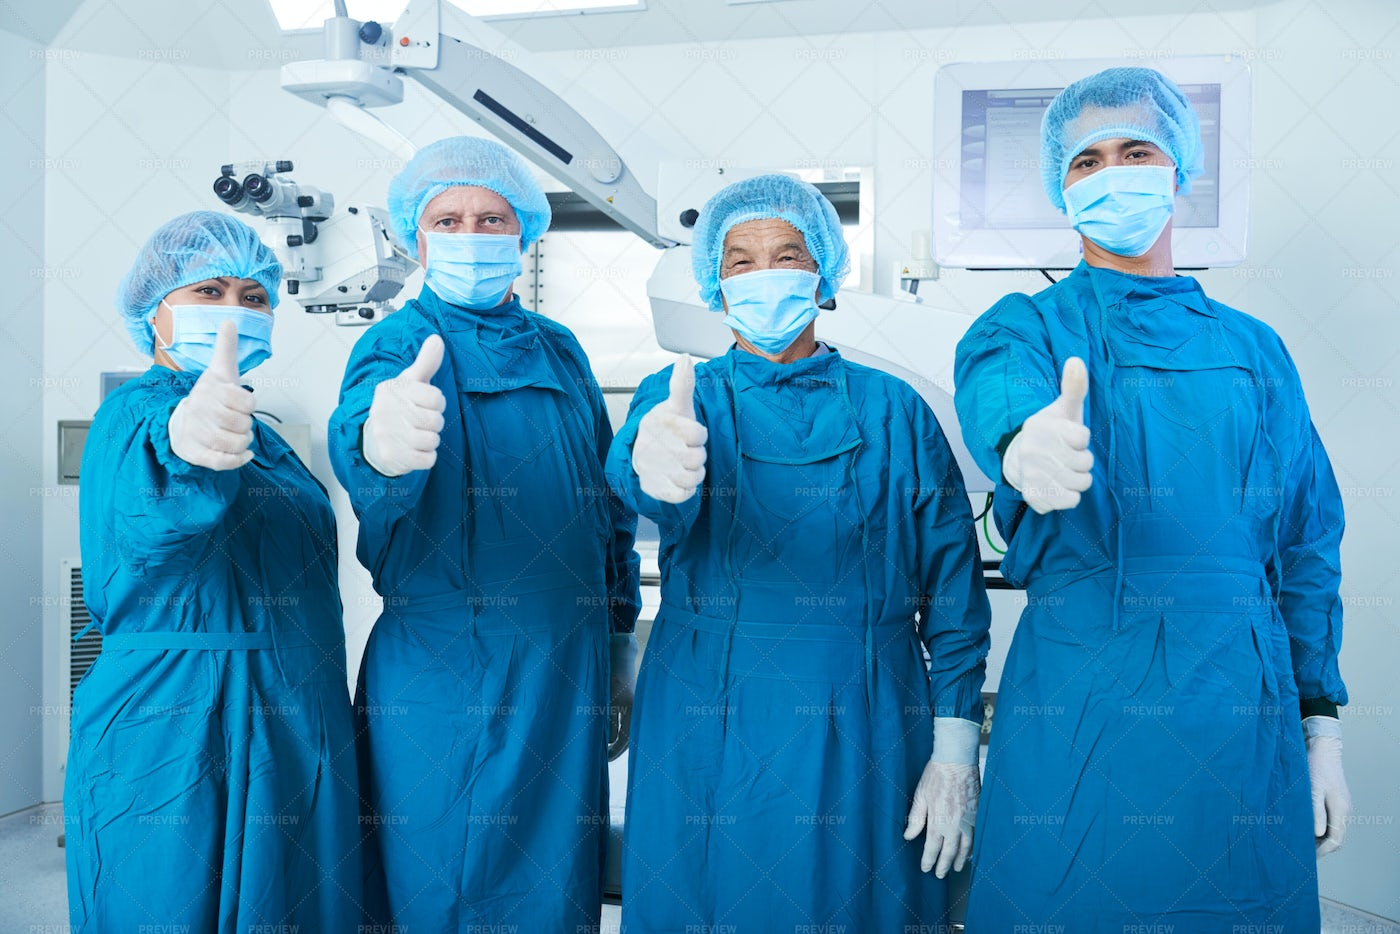 Cheerful Surgeons Showing Thumbs-up: Stock Photos